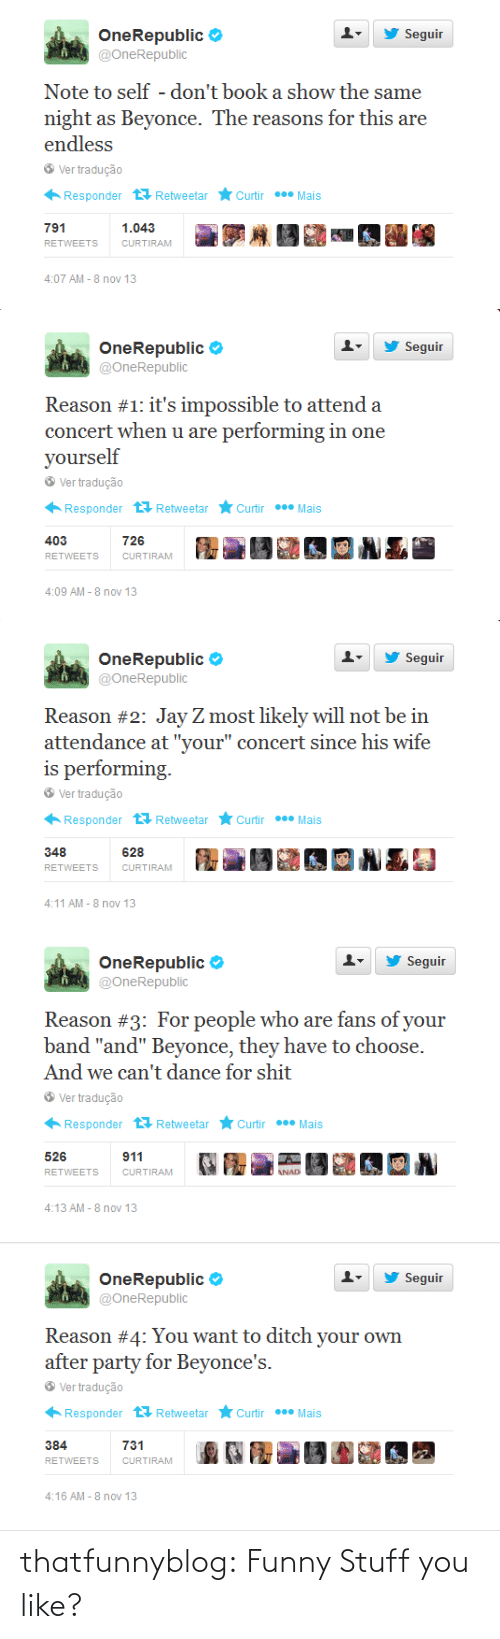 """onerepublic: Seguir  OneRepublic Ф  @OneRepublic  ▼  Note to self - don't book a show the same  night as Beyonce. The reasons for this are  endless  Ver tradução  Responder RetweetarCurtirMais  791  RETWEETS  CURTIRAM  4:07 AM-8 nov 13   Seguir  OneRepublic  @OneRepublic  ▼  concert when u are performing in one  yourself  Ver tradução  Responder t Retweetar ★Curtir  Mais  403  RETWEETS  726  CURTIRAM  4:09 AM -8 nov 13   Seguir  OneRepublic Ф  @OneRepublic  Reason #2. Јауг most likely will not be in  attendance at """"your"""" concert since his wife  Ver tradução  Responder RetweetarCurtirMais  348  RETWEETS CURTİRAM  628  4:11 AM -8 nov 13   Seguir  OneRepublic Ф  @OneRepublic  Reason #3: For people who are fans of your  band """"and"""" Beyonce, they have to choose.  And we can't dance for shit  Ver tradução  Responder t Retweetar ★Curtir  Mais  911  526  RETWEETSCURTIRAM  NAD  4:13 AM -8 nov 13   Seguir  OneRepublic Ф  @OneRepublic  Reason #4: You want to ditch your own  after party for Beyonce's.  Ver tradução  Responder RetweetarCurtirMais  731  CURTIRAM  RETWEETS  4:16 AM -8 nov 13 thatfunnyblog:  Funny Stuff you like?"""